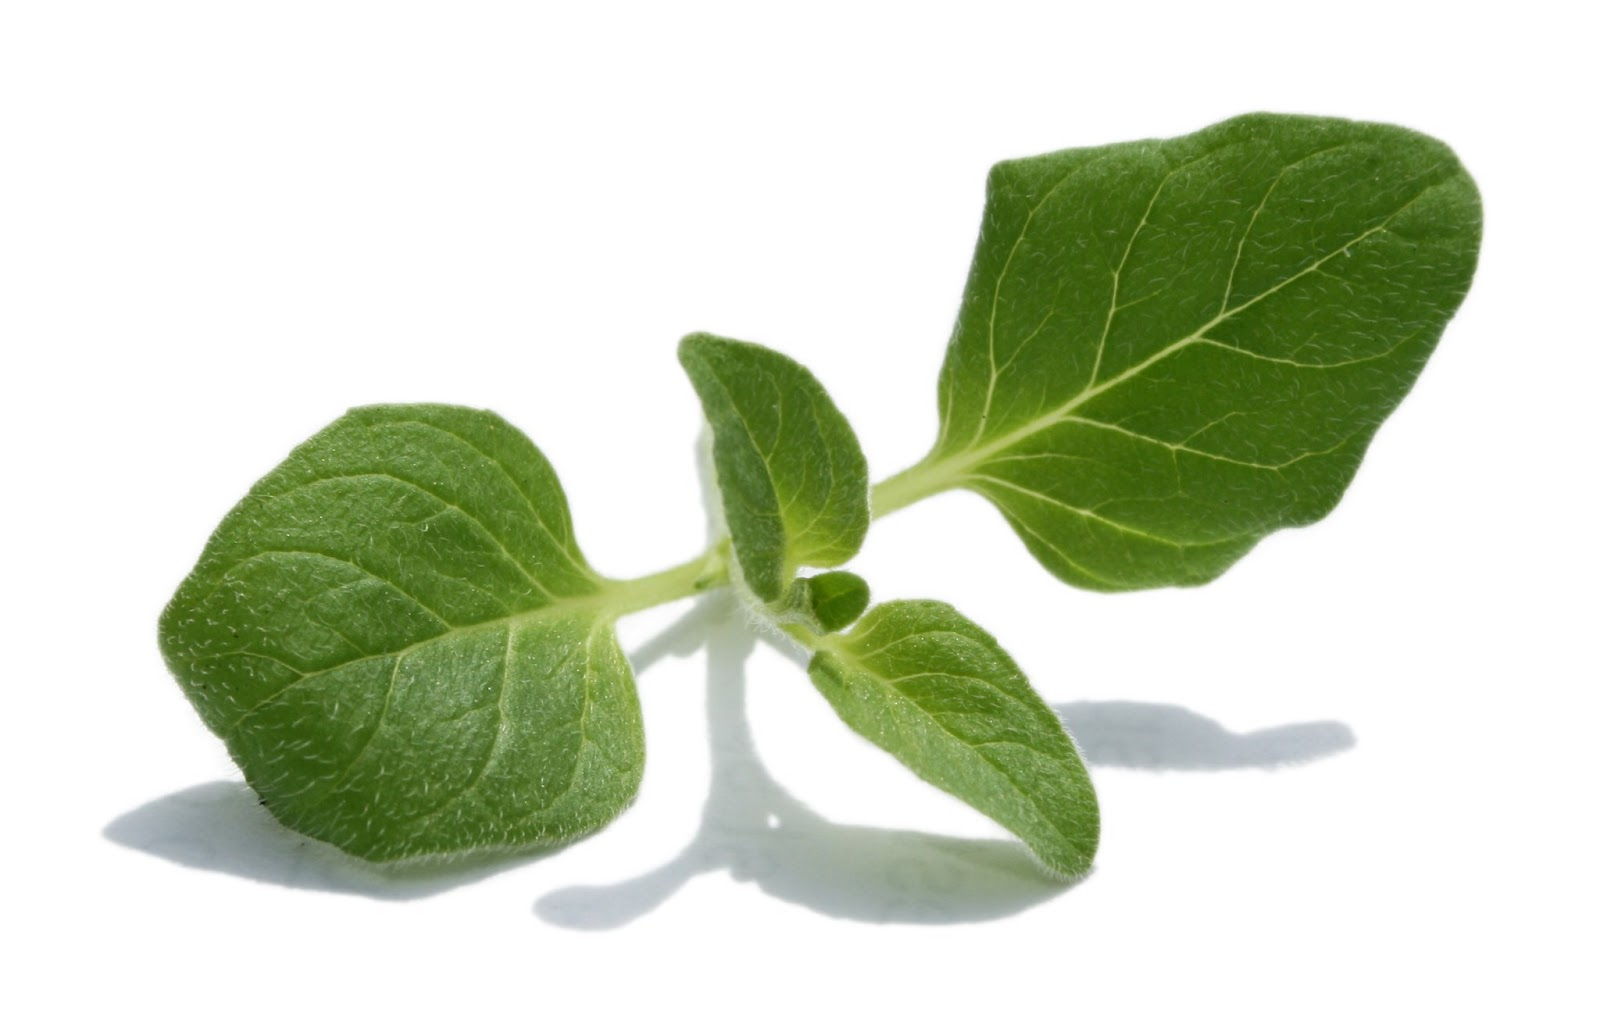 The healing power of oregano: the benefits and harm